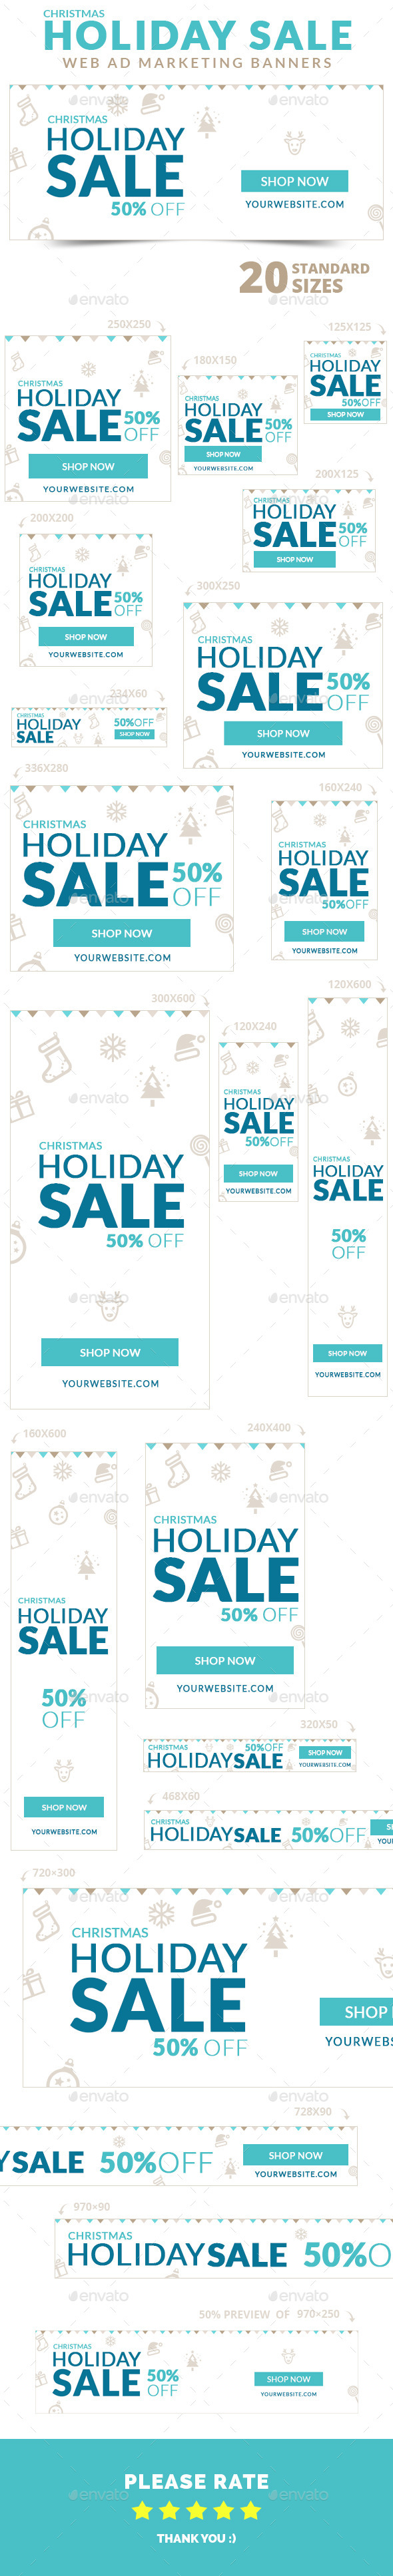 GraphicRiver Christmas Holiday Sale Web Ad Marketing Banners 9712038